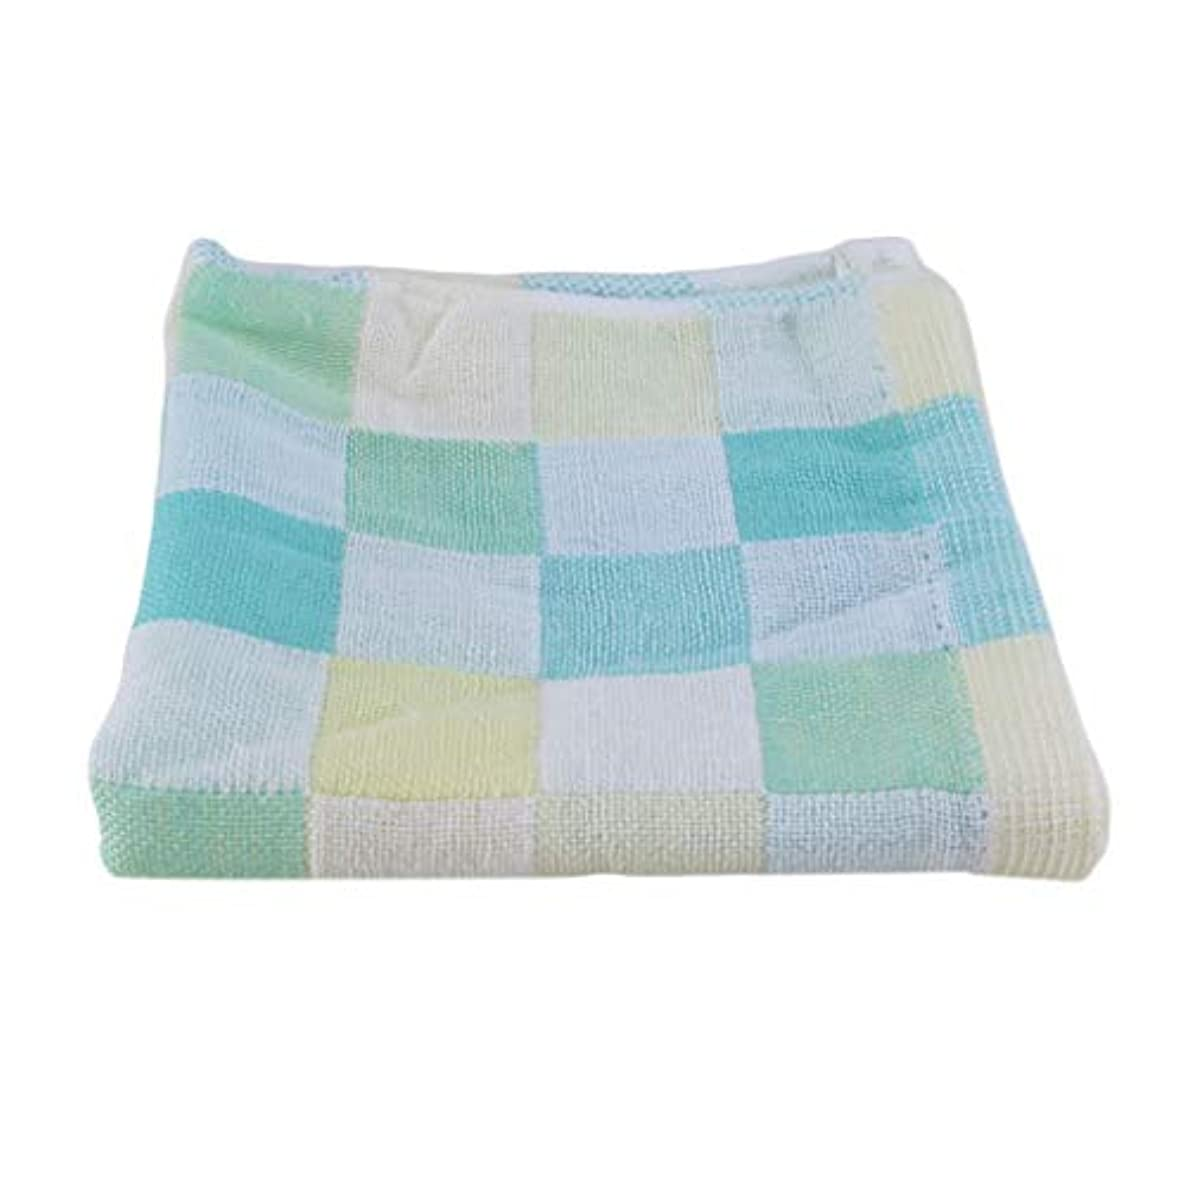 朝の体操をする有益集まるMaxcrestas - 28*28cm Square Towels Cotton gauze Plaid Towel Kids Bibs Daily Use Hand Face Towels for Kids